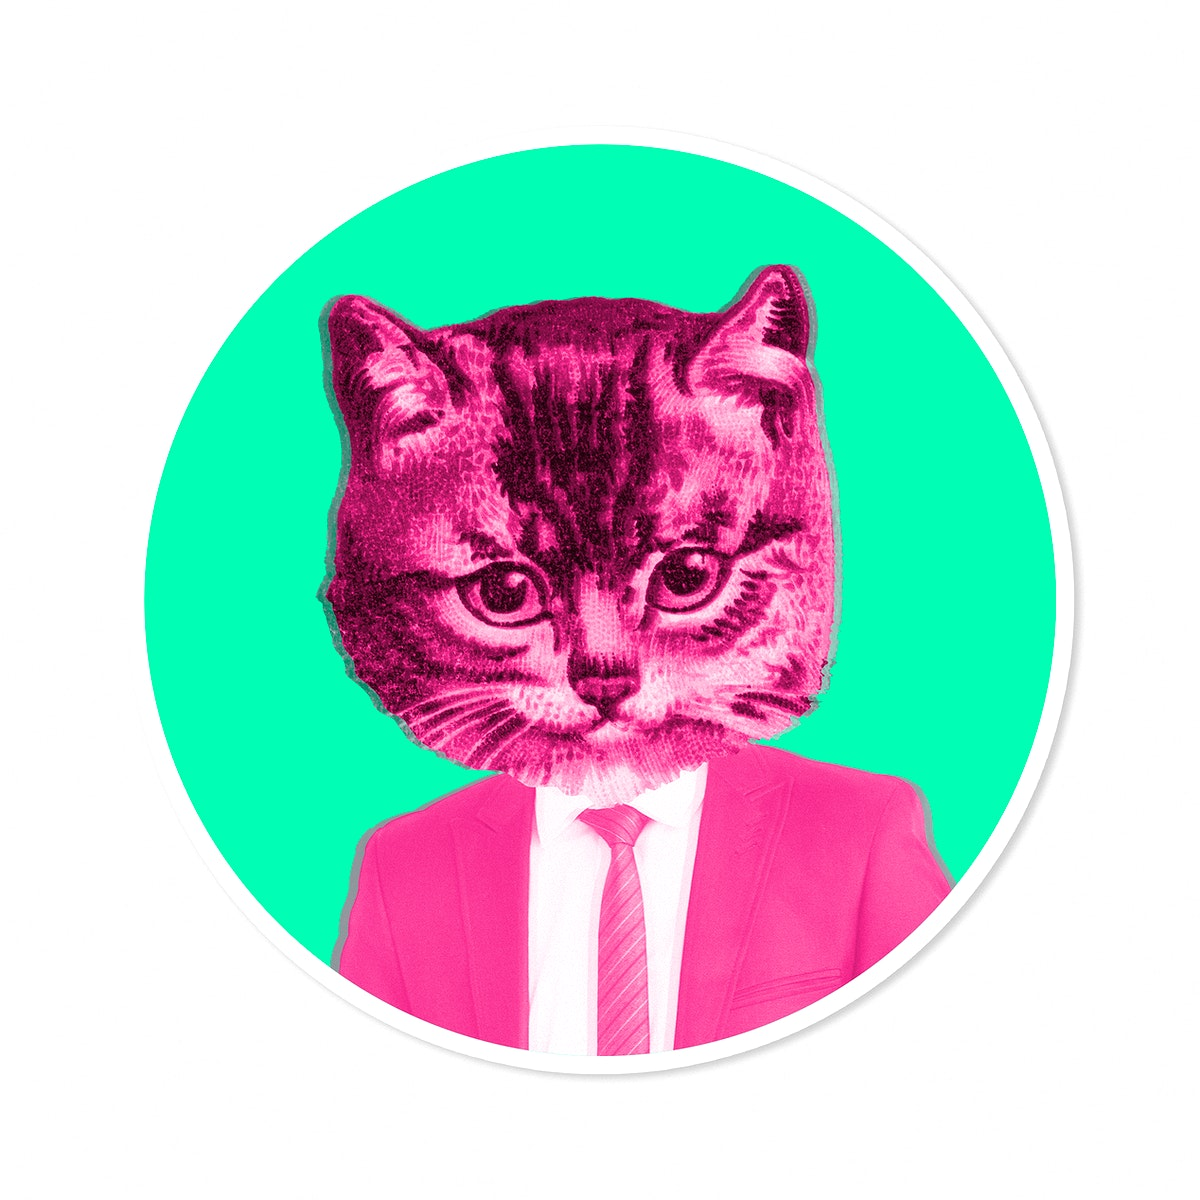 Cat wearing a pink suit sticker illustration